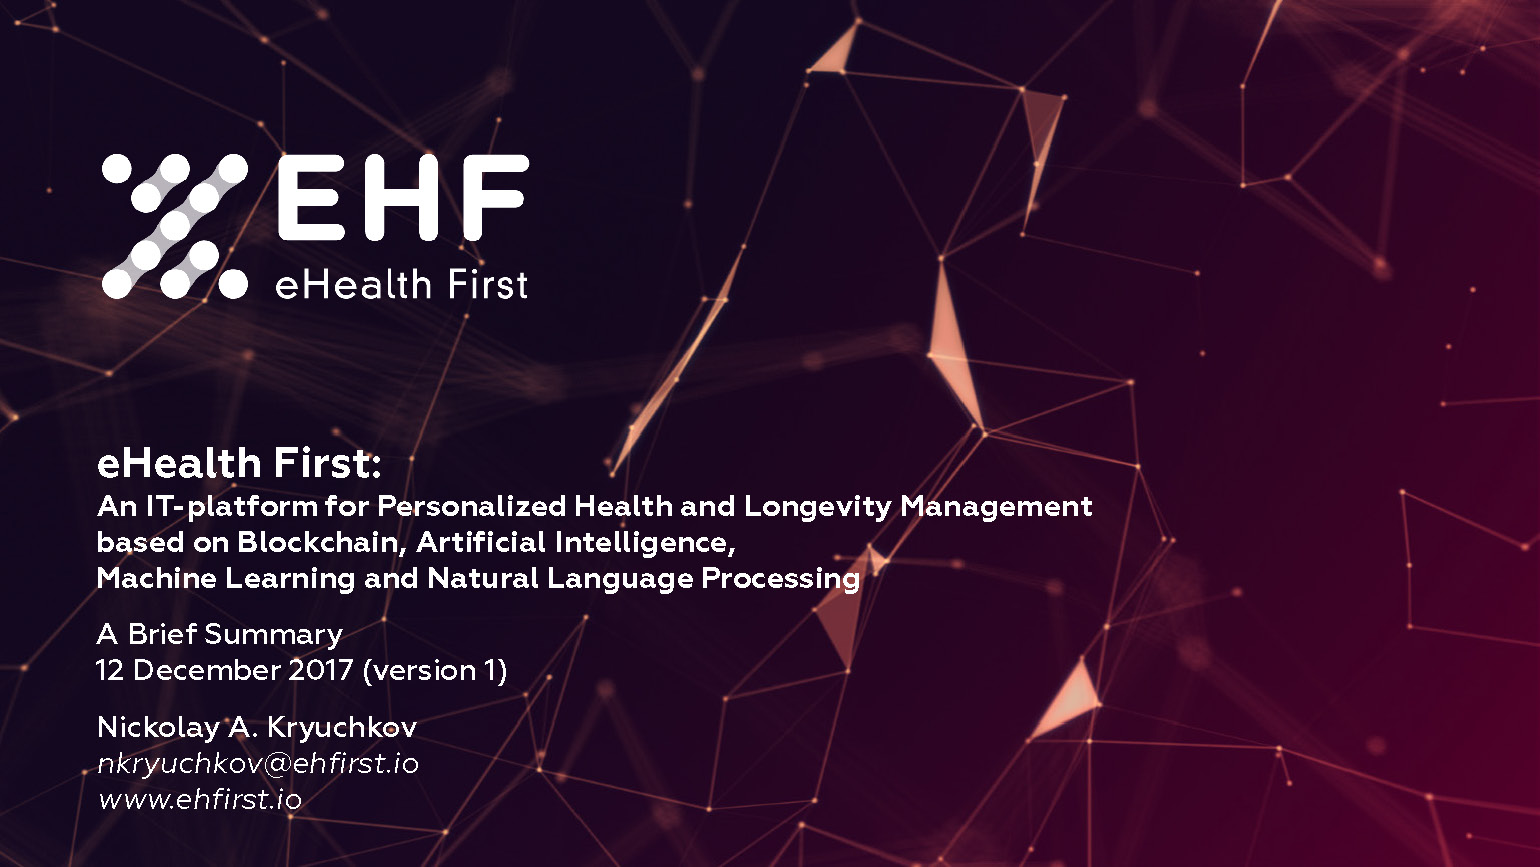 ❗ eHealth First ICO -- Whitelist + Special Offers and News